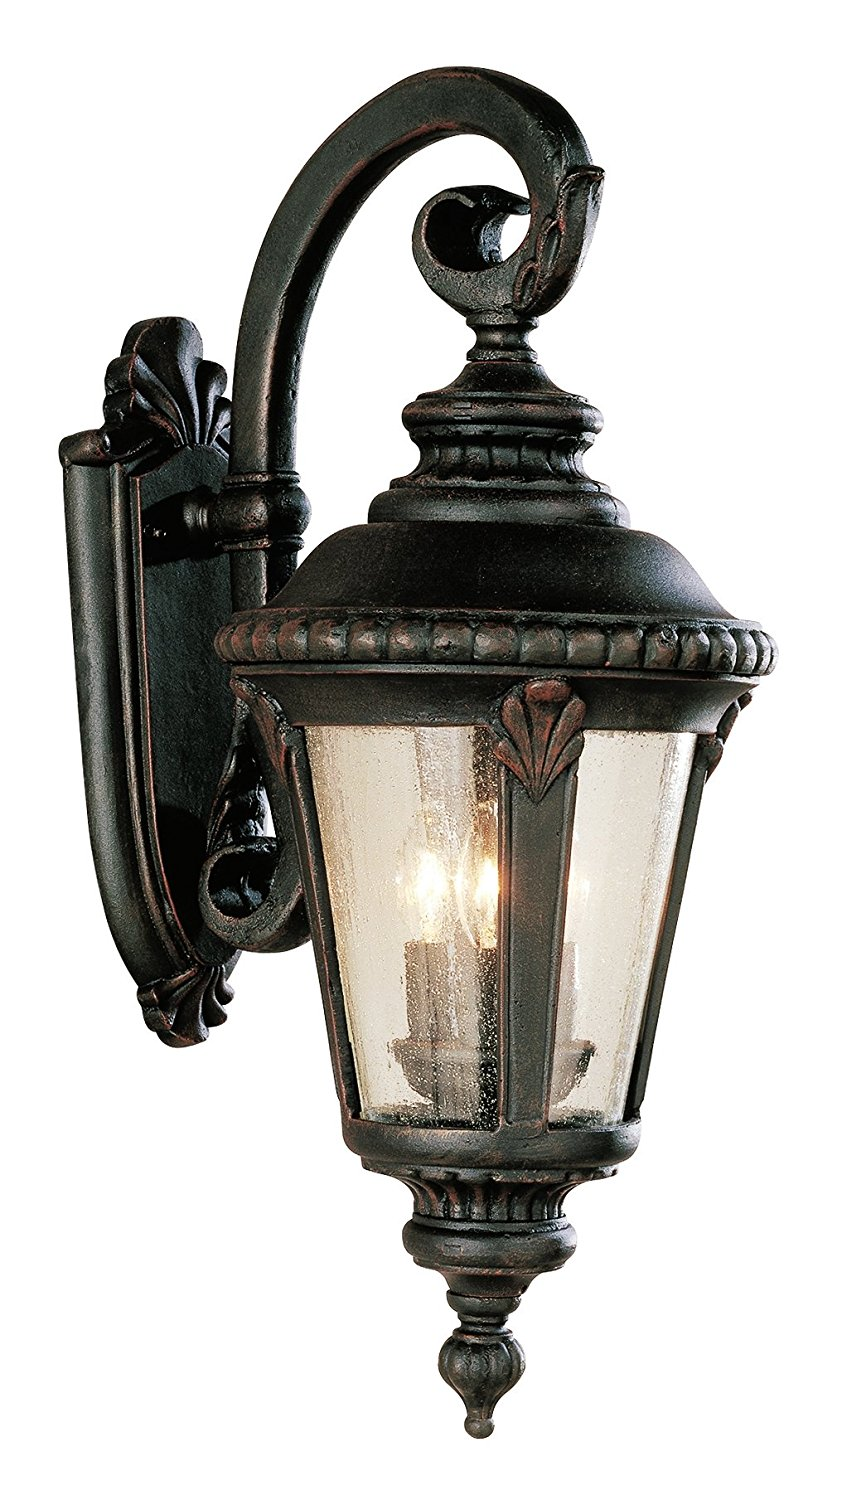 10 facts about Outdoor wall mount light fixtures | Warisan ... on Outdoor Lighting Fixtures Wall Mounted id=96212